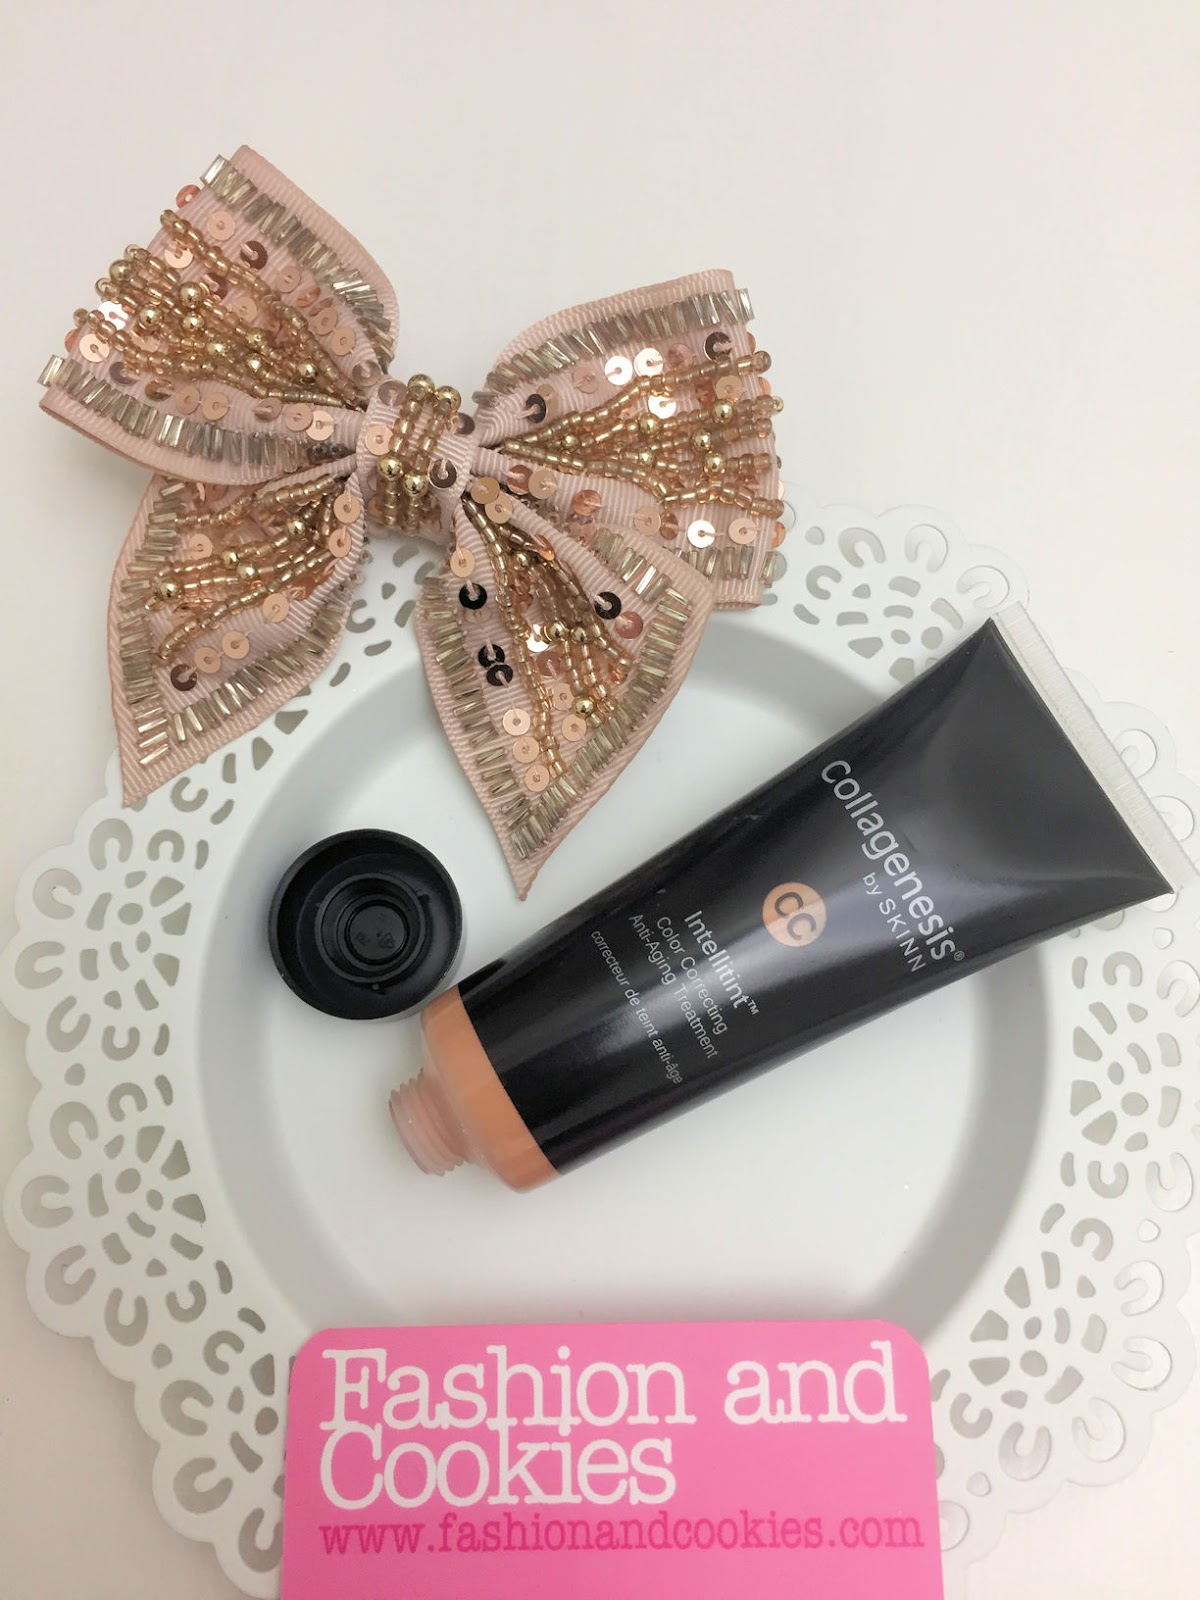 SKINN Cosmetics makeup on HSE24 on Fashion and Cookies beauty blog, beauty blogger